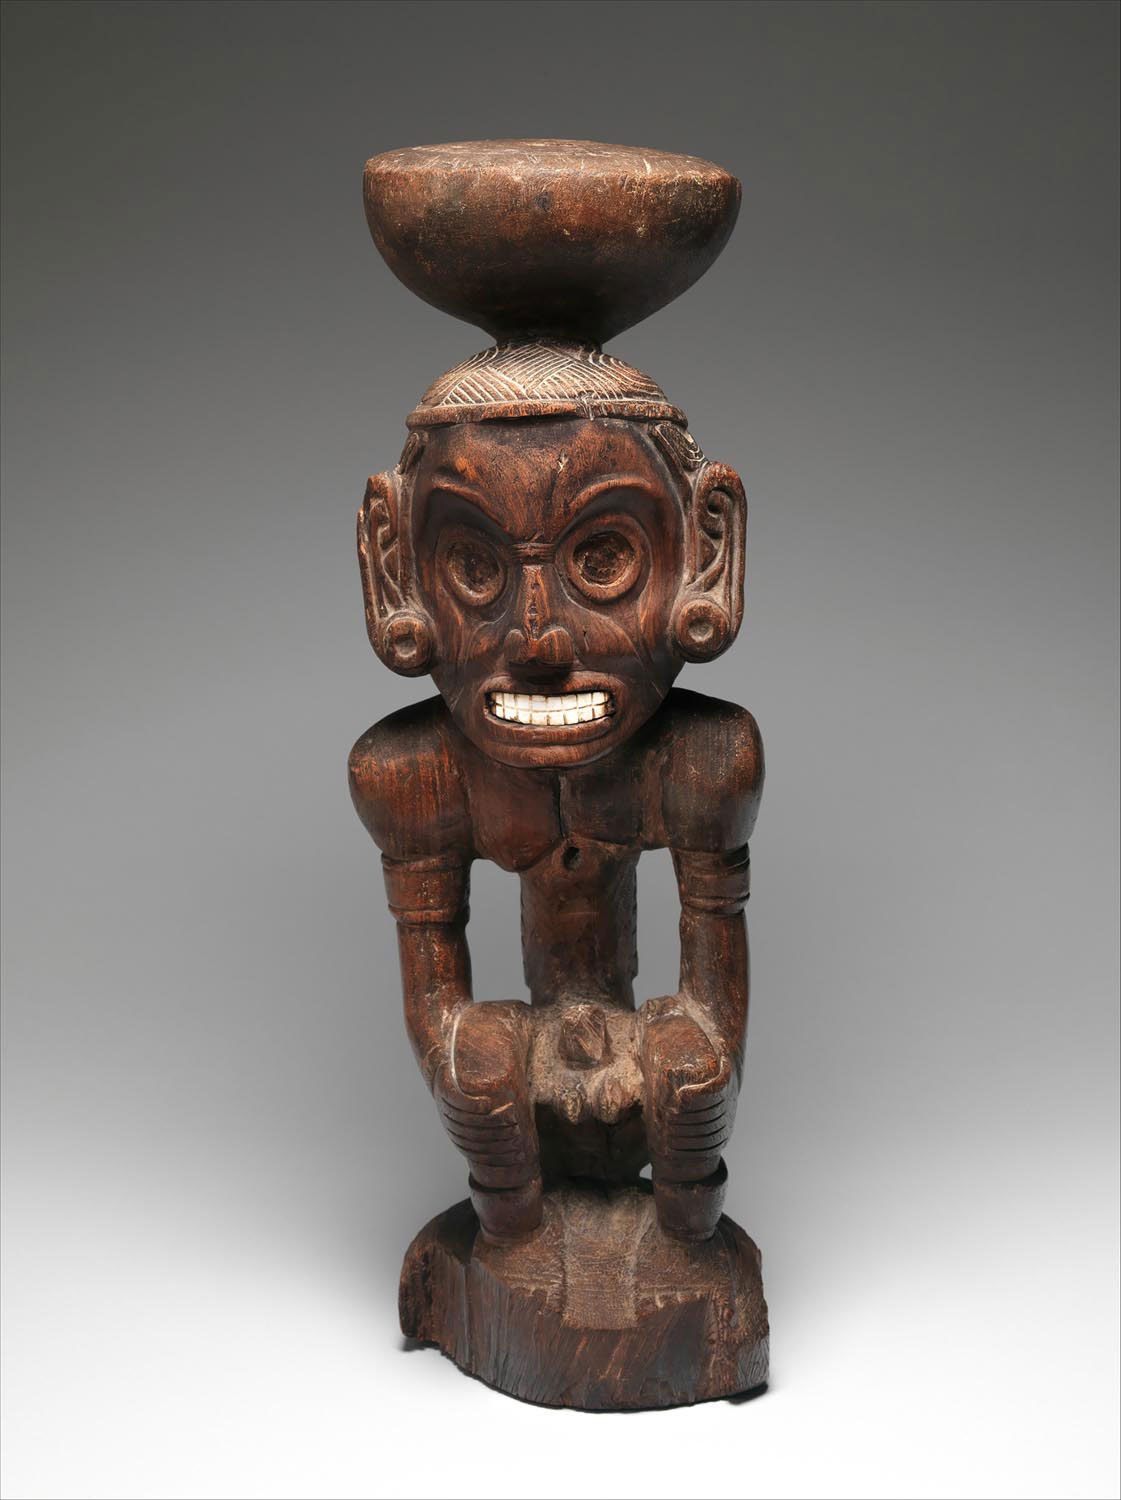 Zemi Cohaba Stand (c. 974–1020, wood and shell, 27 x 8 5/8 x 9 1/8 inches). The Michael C. Rockefeller Memorial Collection, Bequest of Nelson A. Rockefeller, 1979